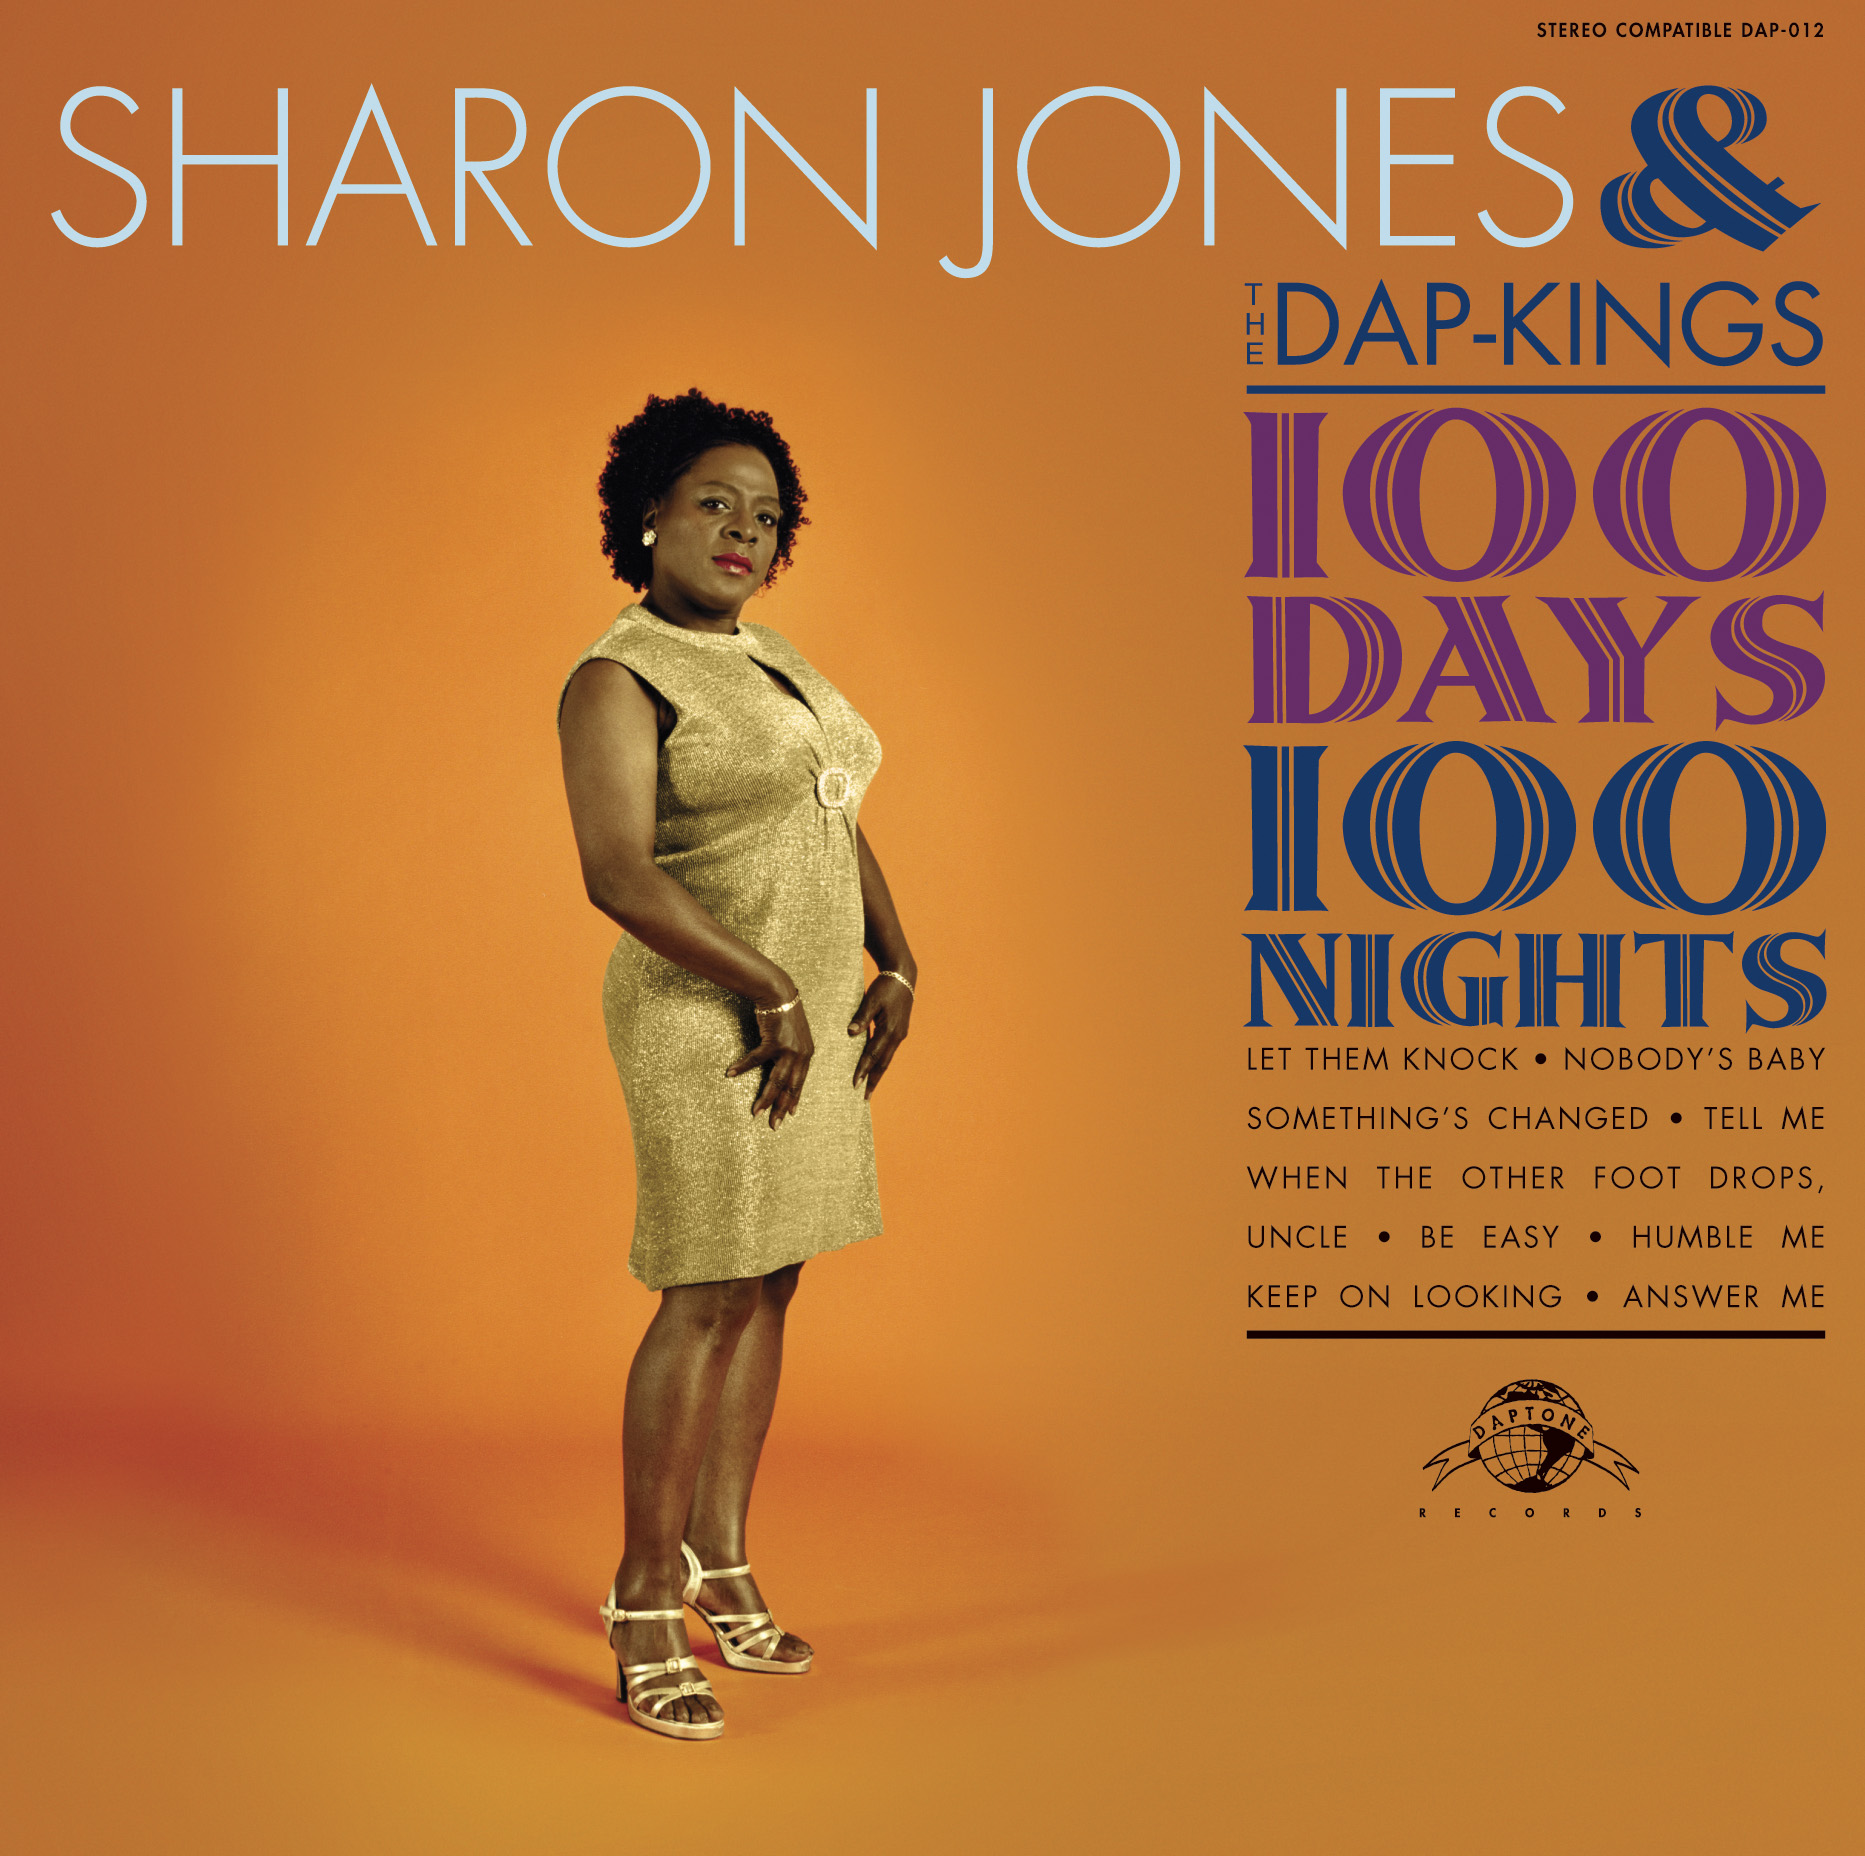 Pochette de l'album de Sharon Jones 100 Days Jewpop